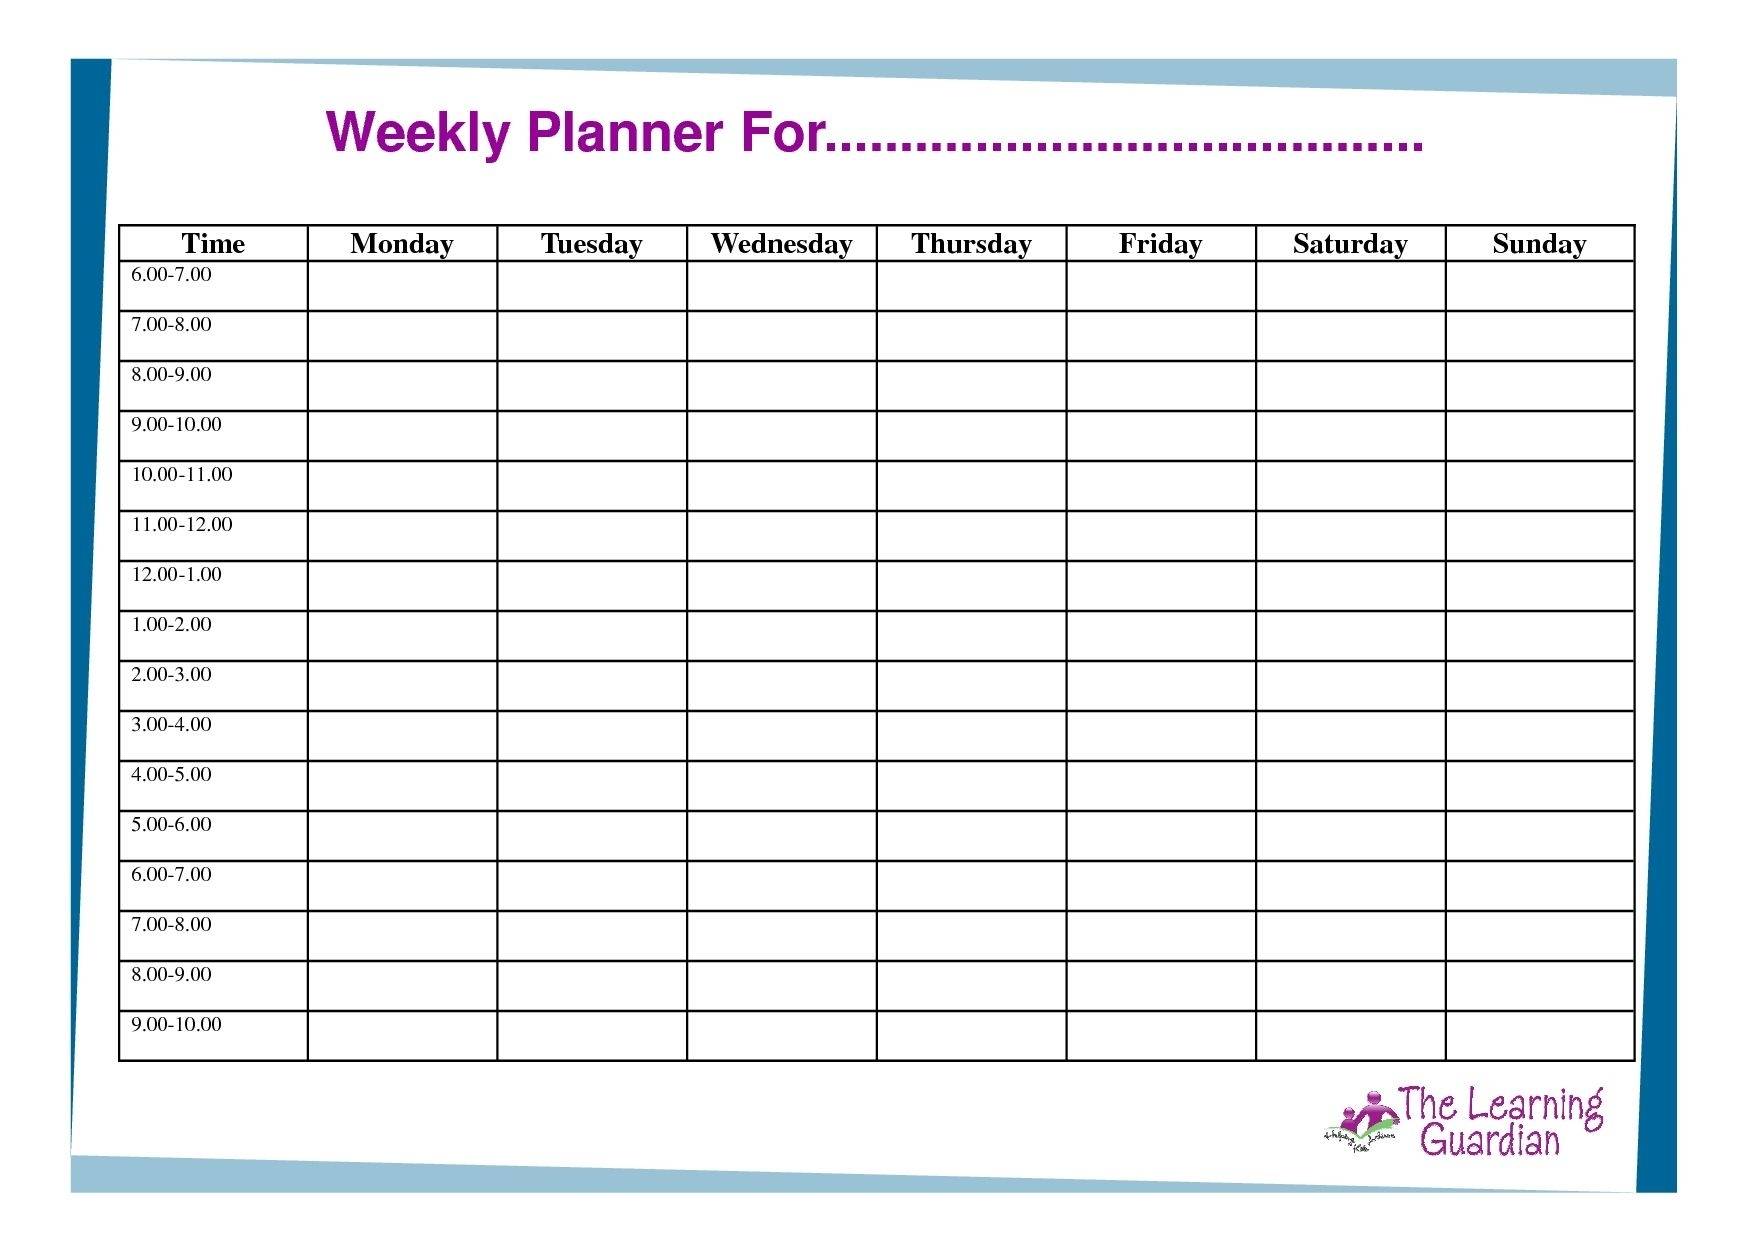 Free Printable Weekly Calendar Templates Planner For Time Incredible throughout 7-Day Week Blank Calendar Template